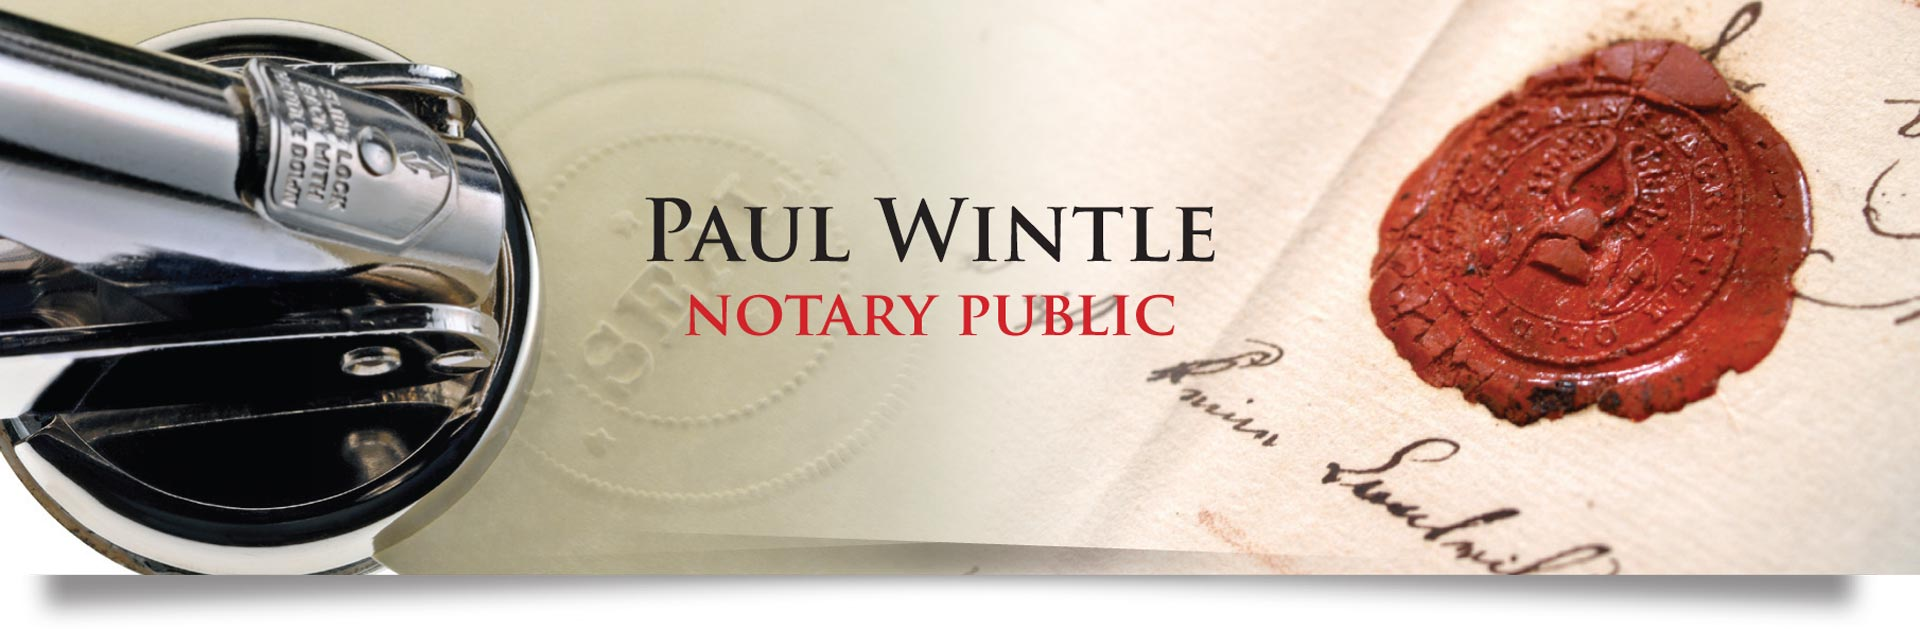 notary public Poole